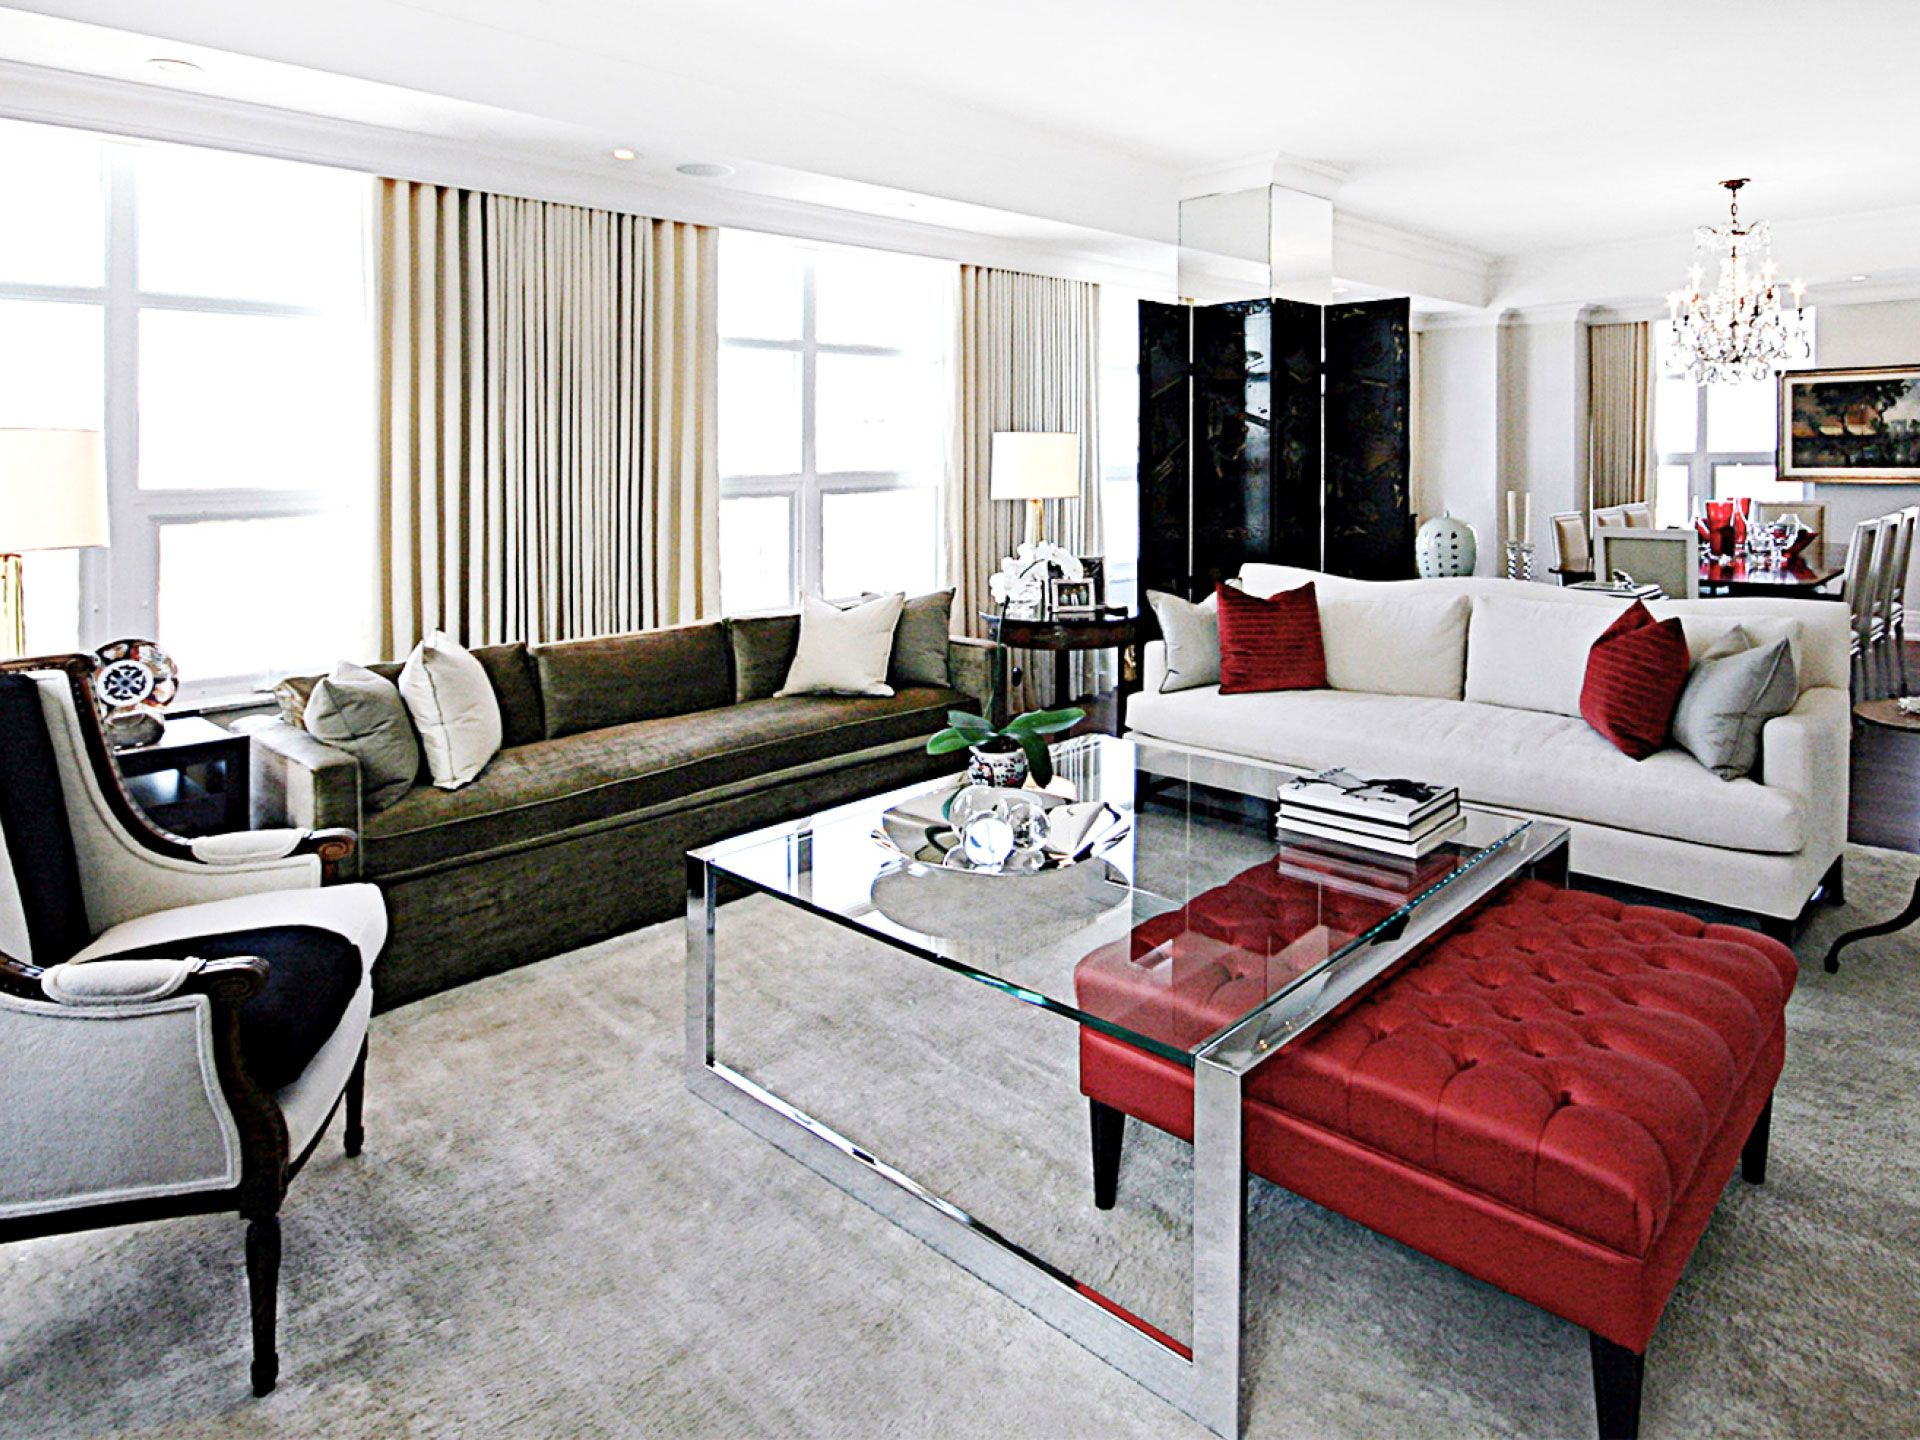 The Regency Private Residence U2013 Tomas Pearce Interior Design Consulting Inc.